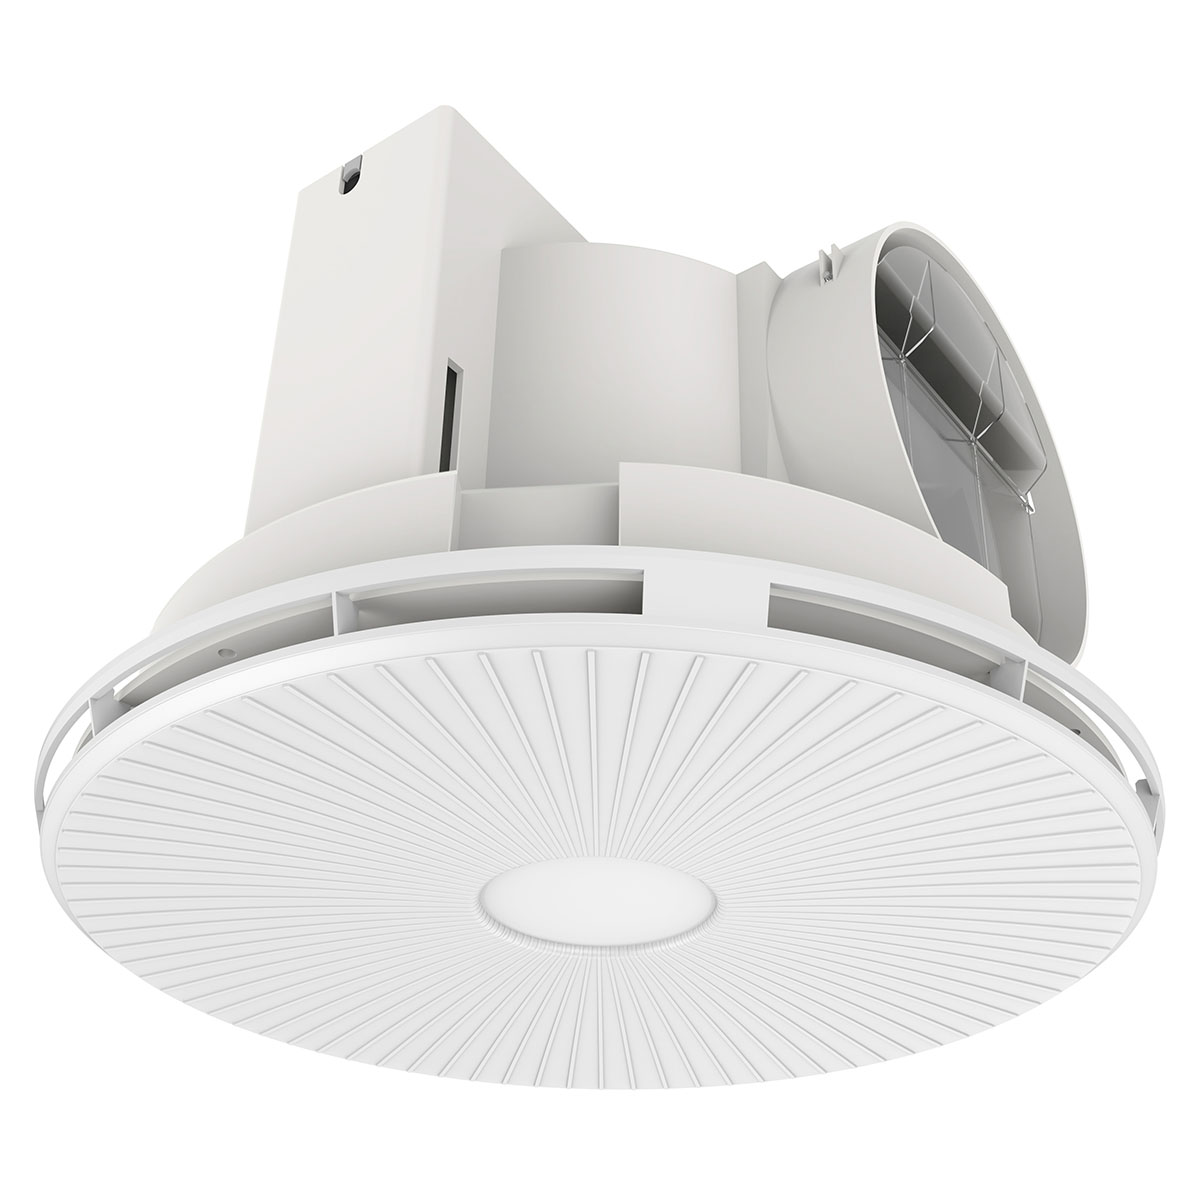 brilliant helios round led ceiling exhaust fan white. Black Bedroom Furniture Sets. Home Design Ideas